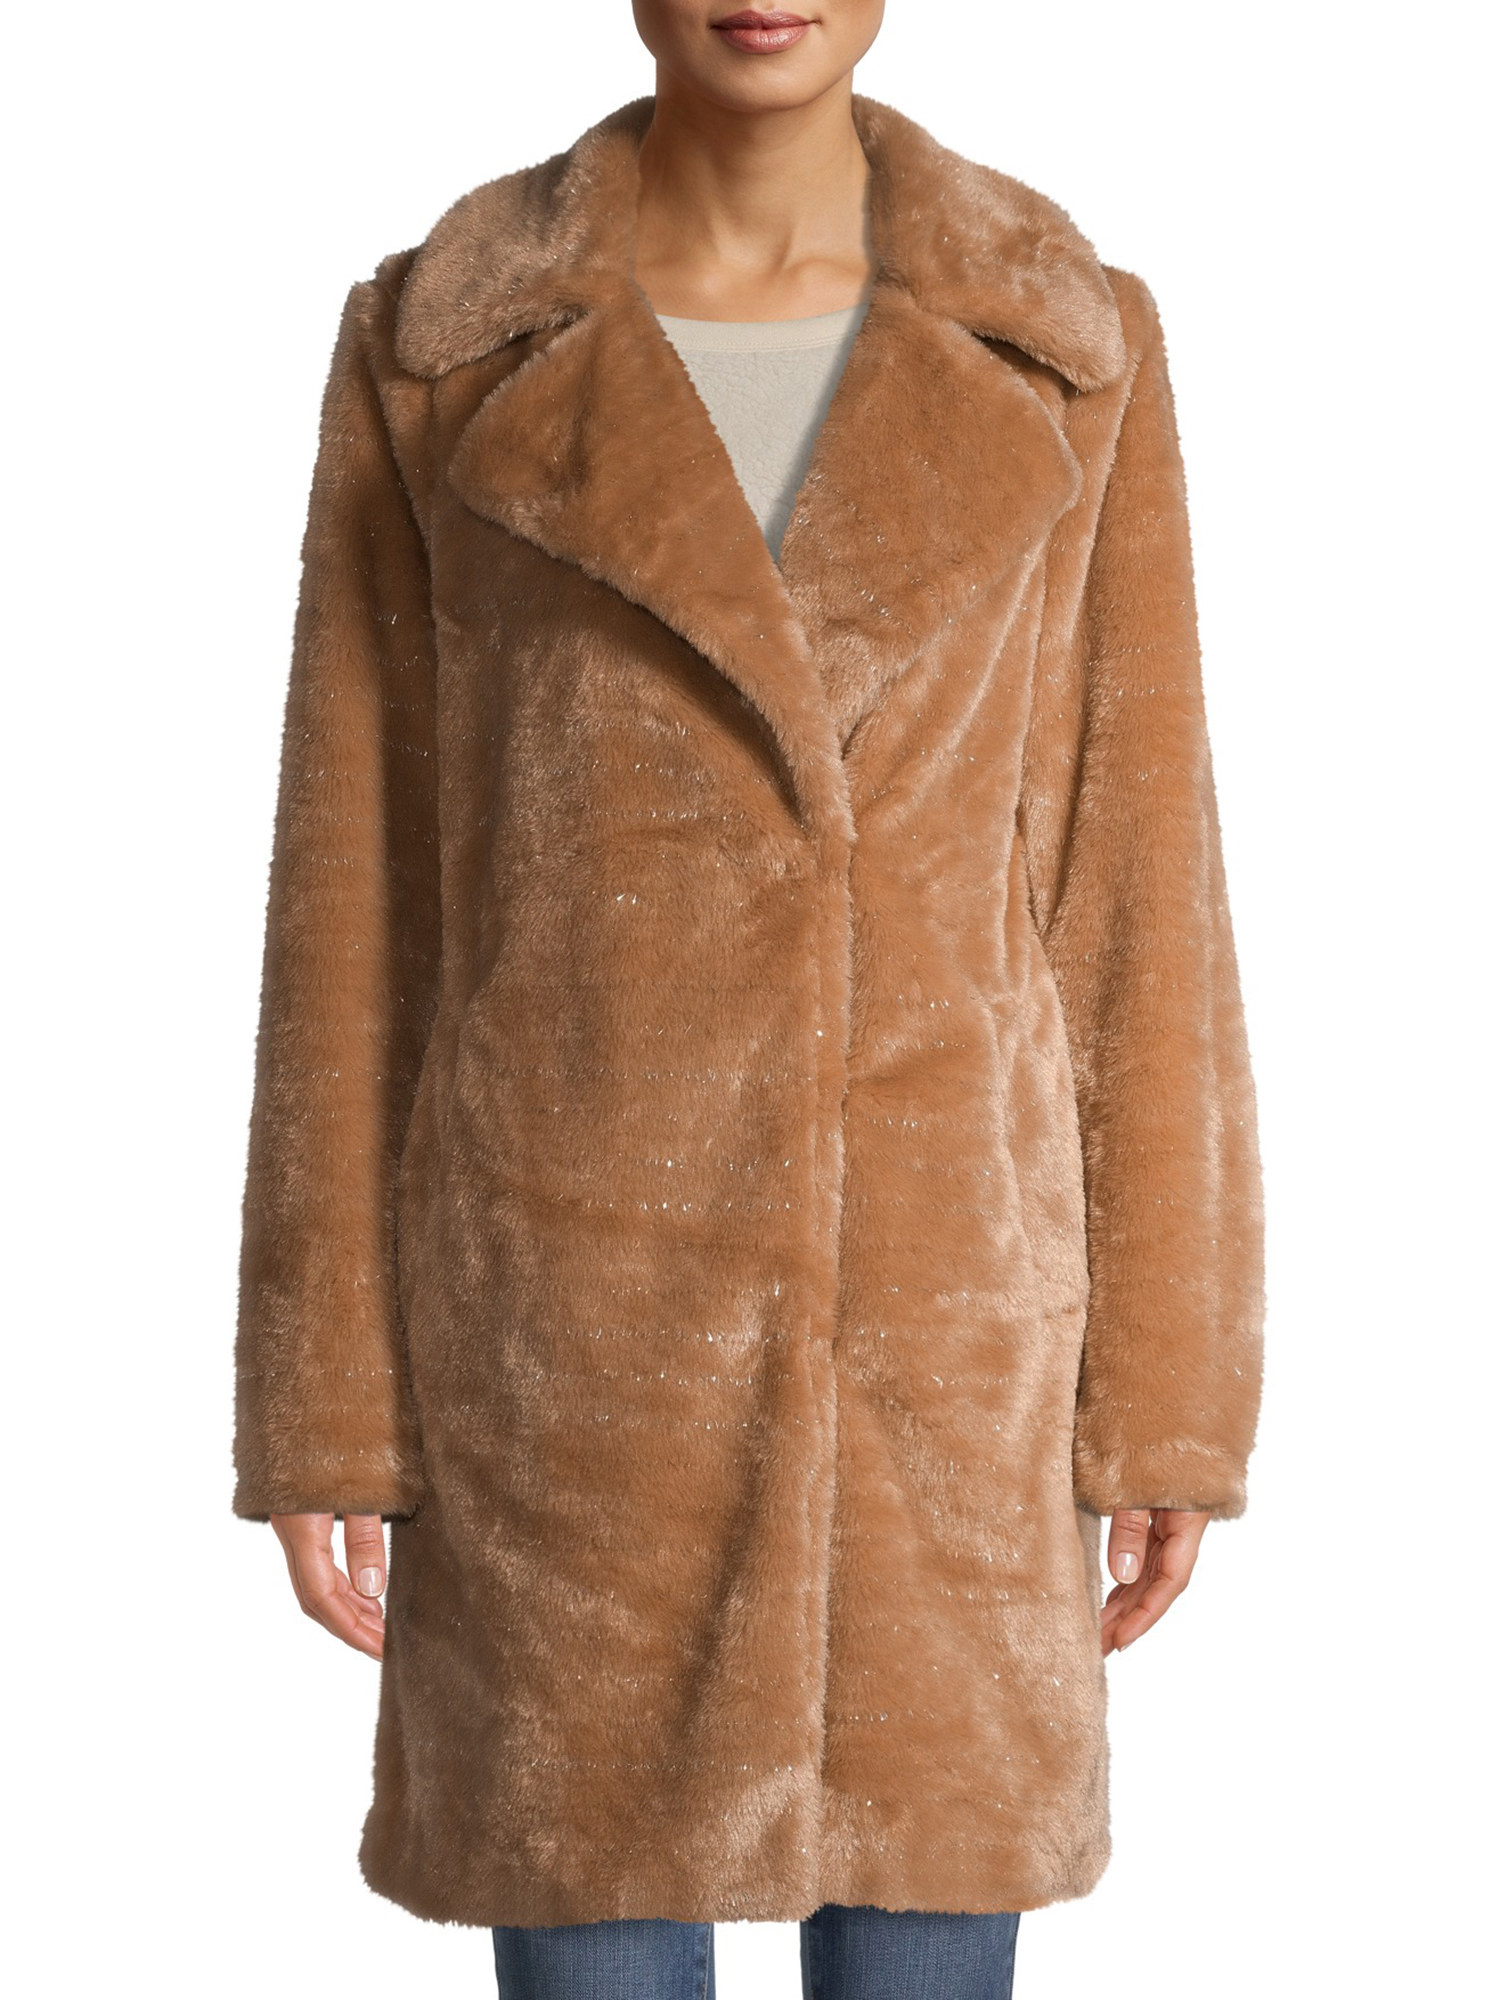 person wearing a beige faux fur coat